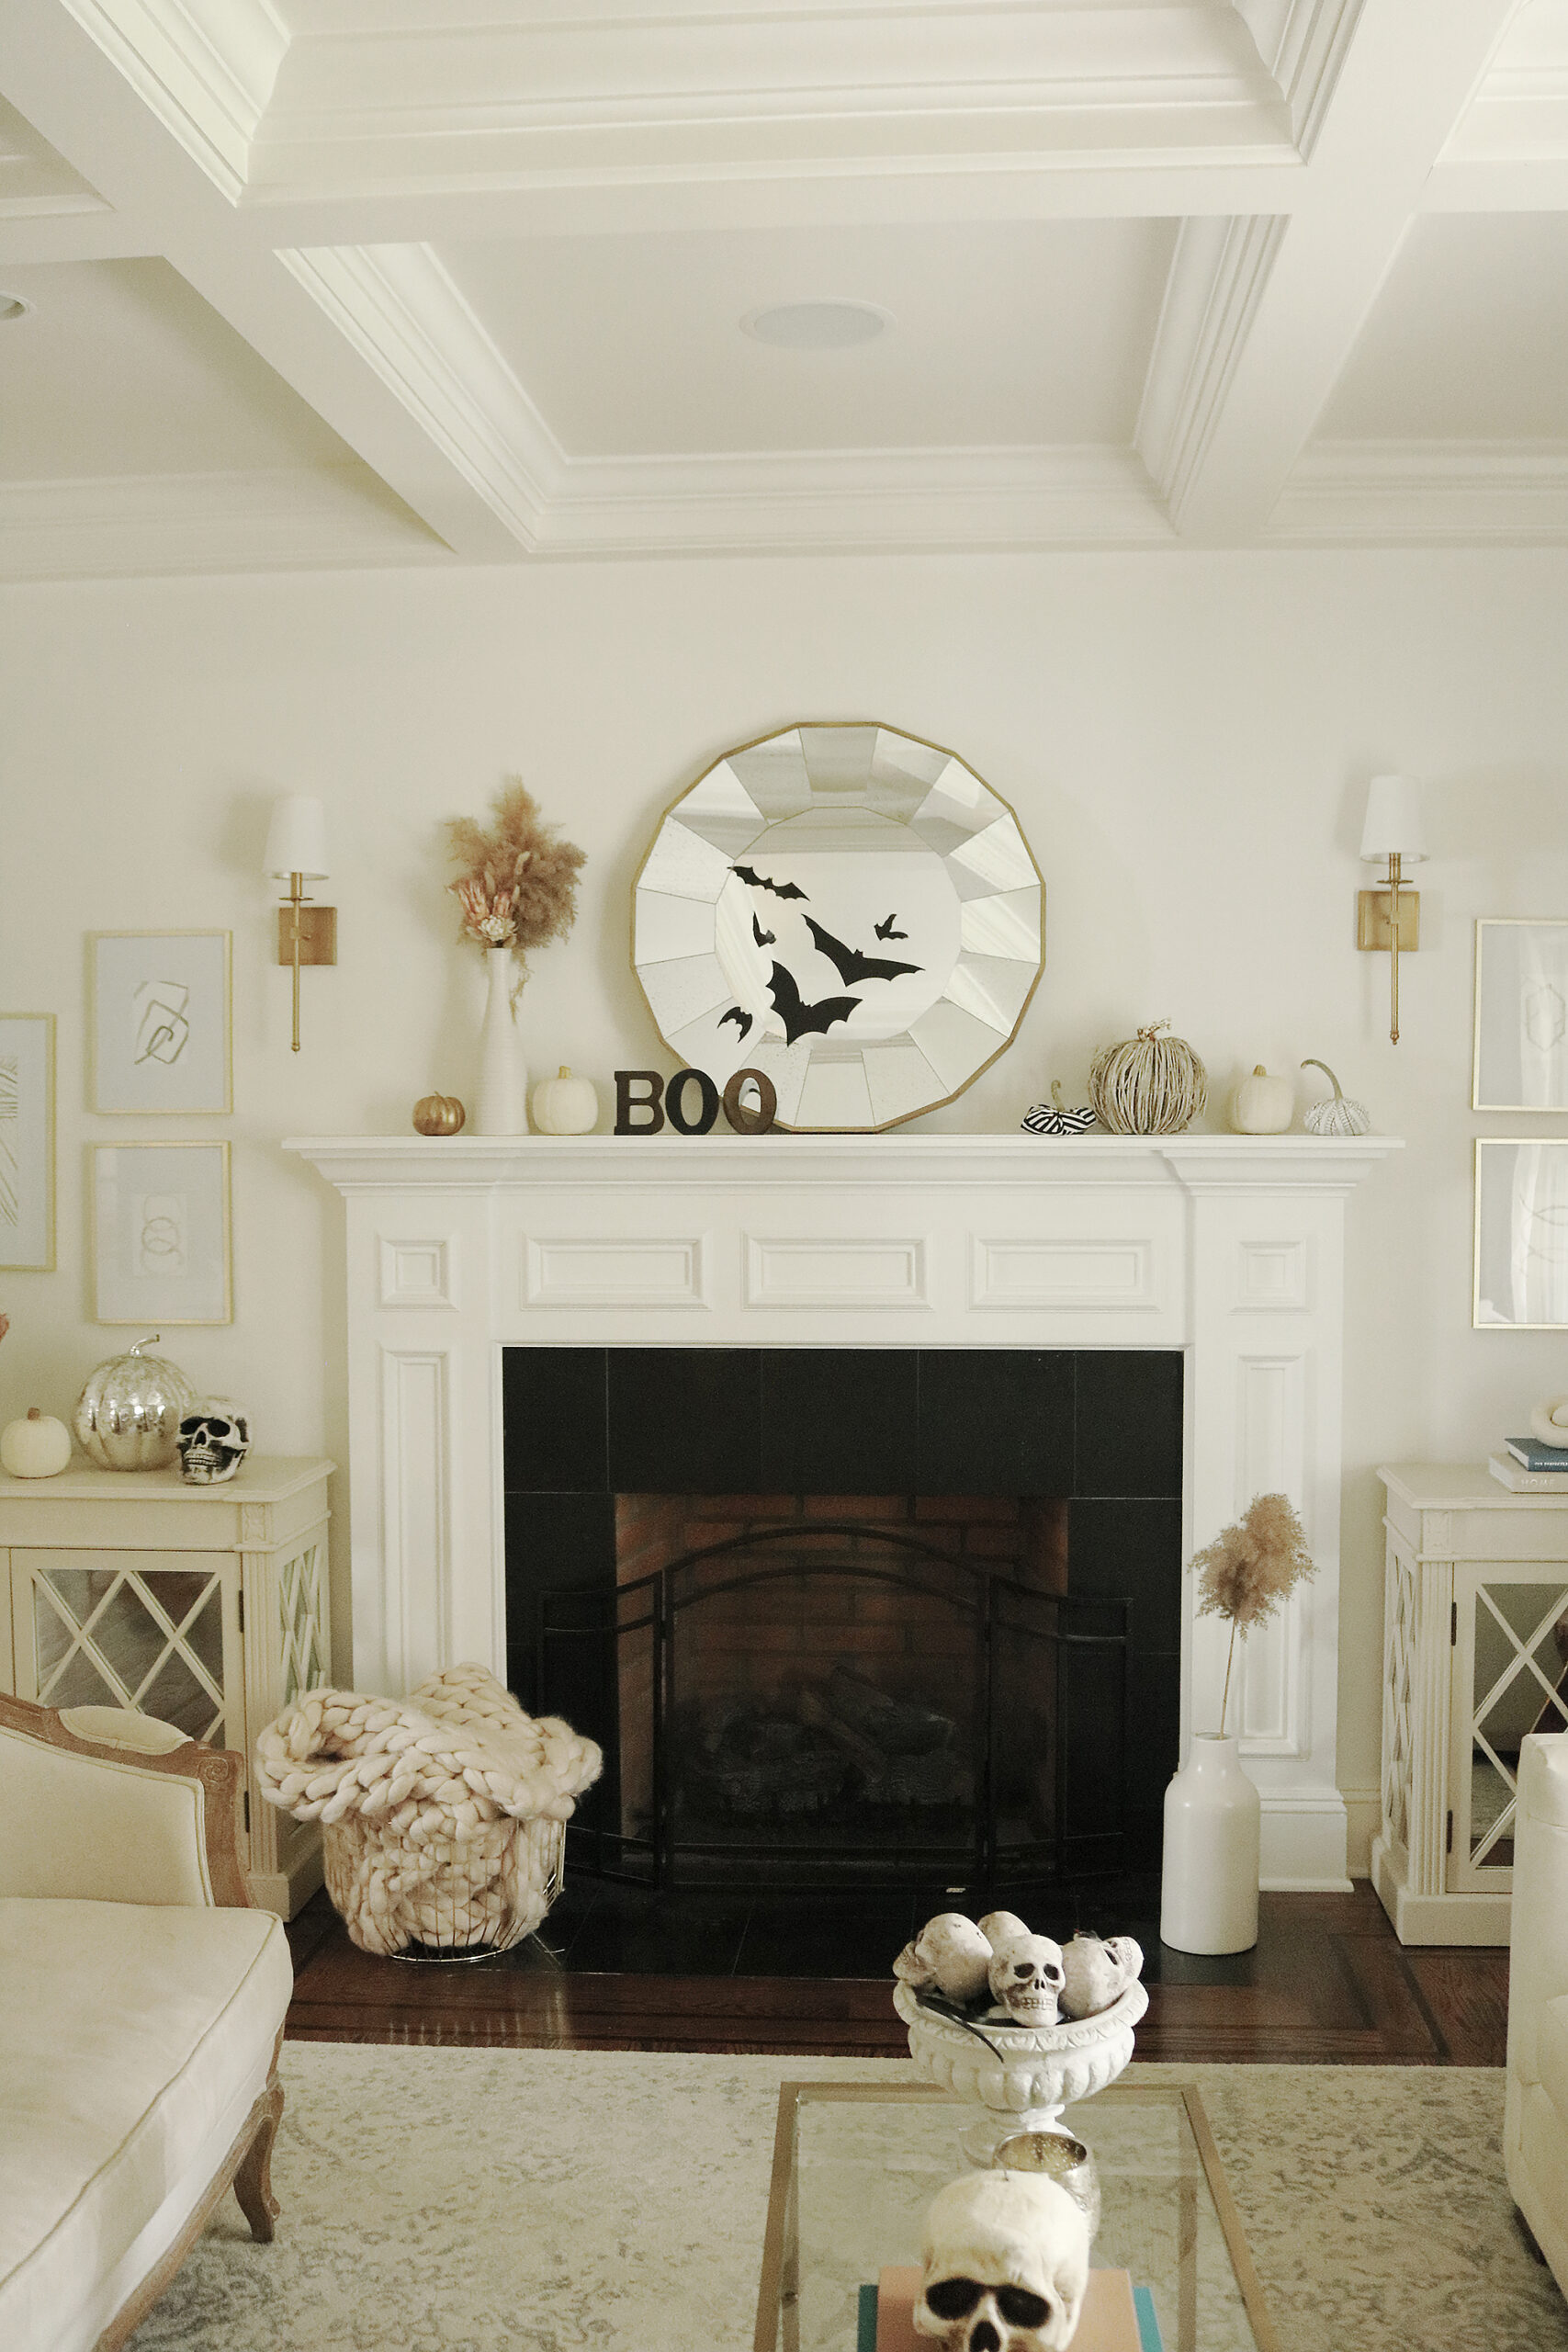 Our not-so-spooky Halloween Home Decorations with spiders and skeletons--simple and easy spooky fun || Darling Darleen Top CT Lifestyle Blogger #darlingdarleen #halloweendecorations